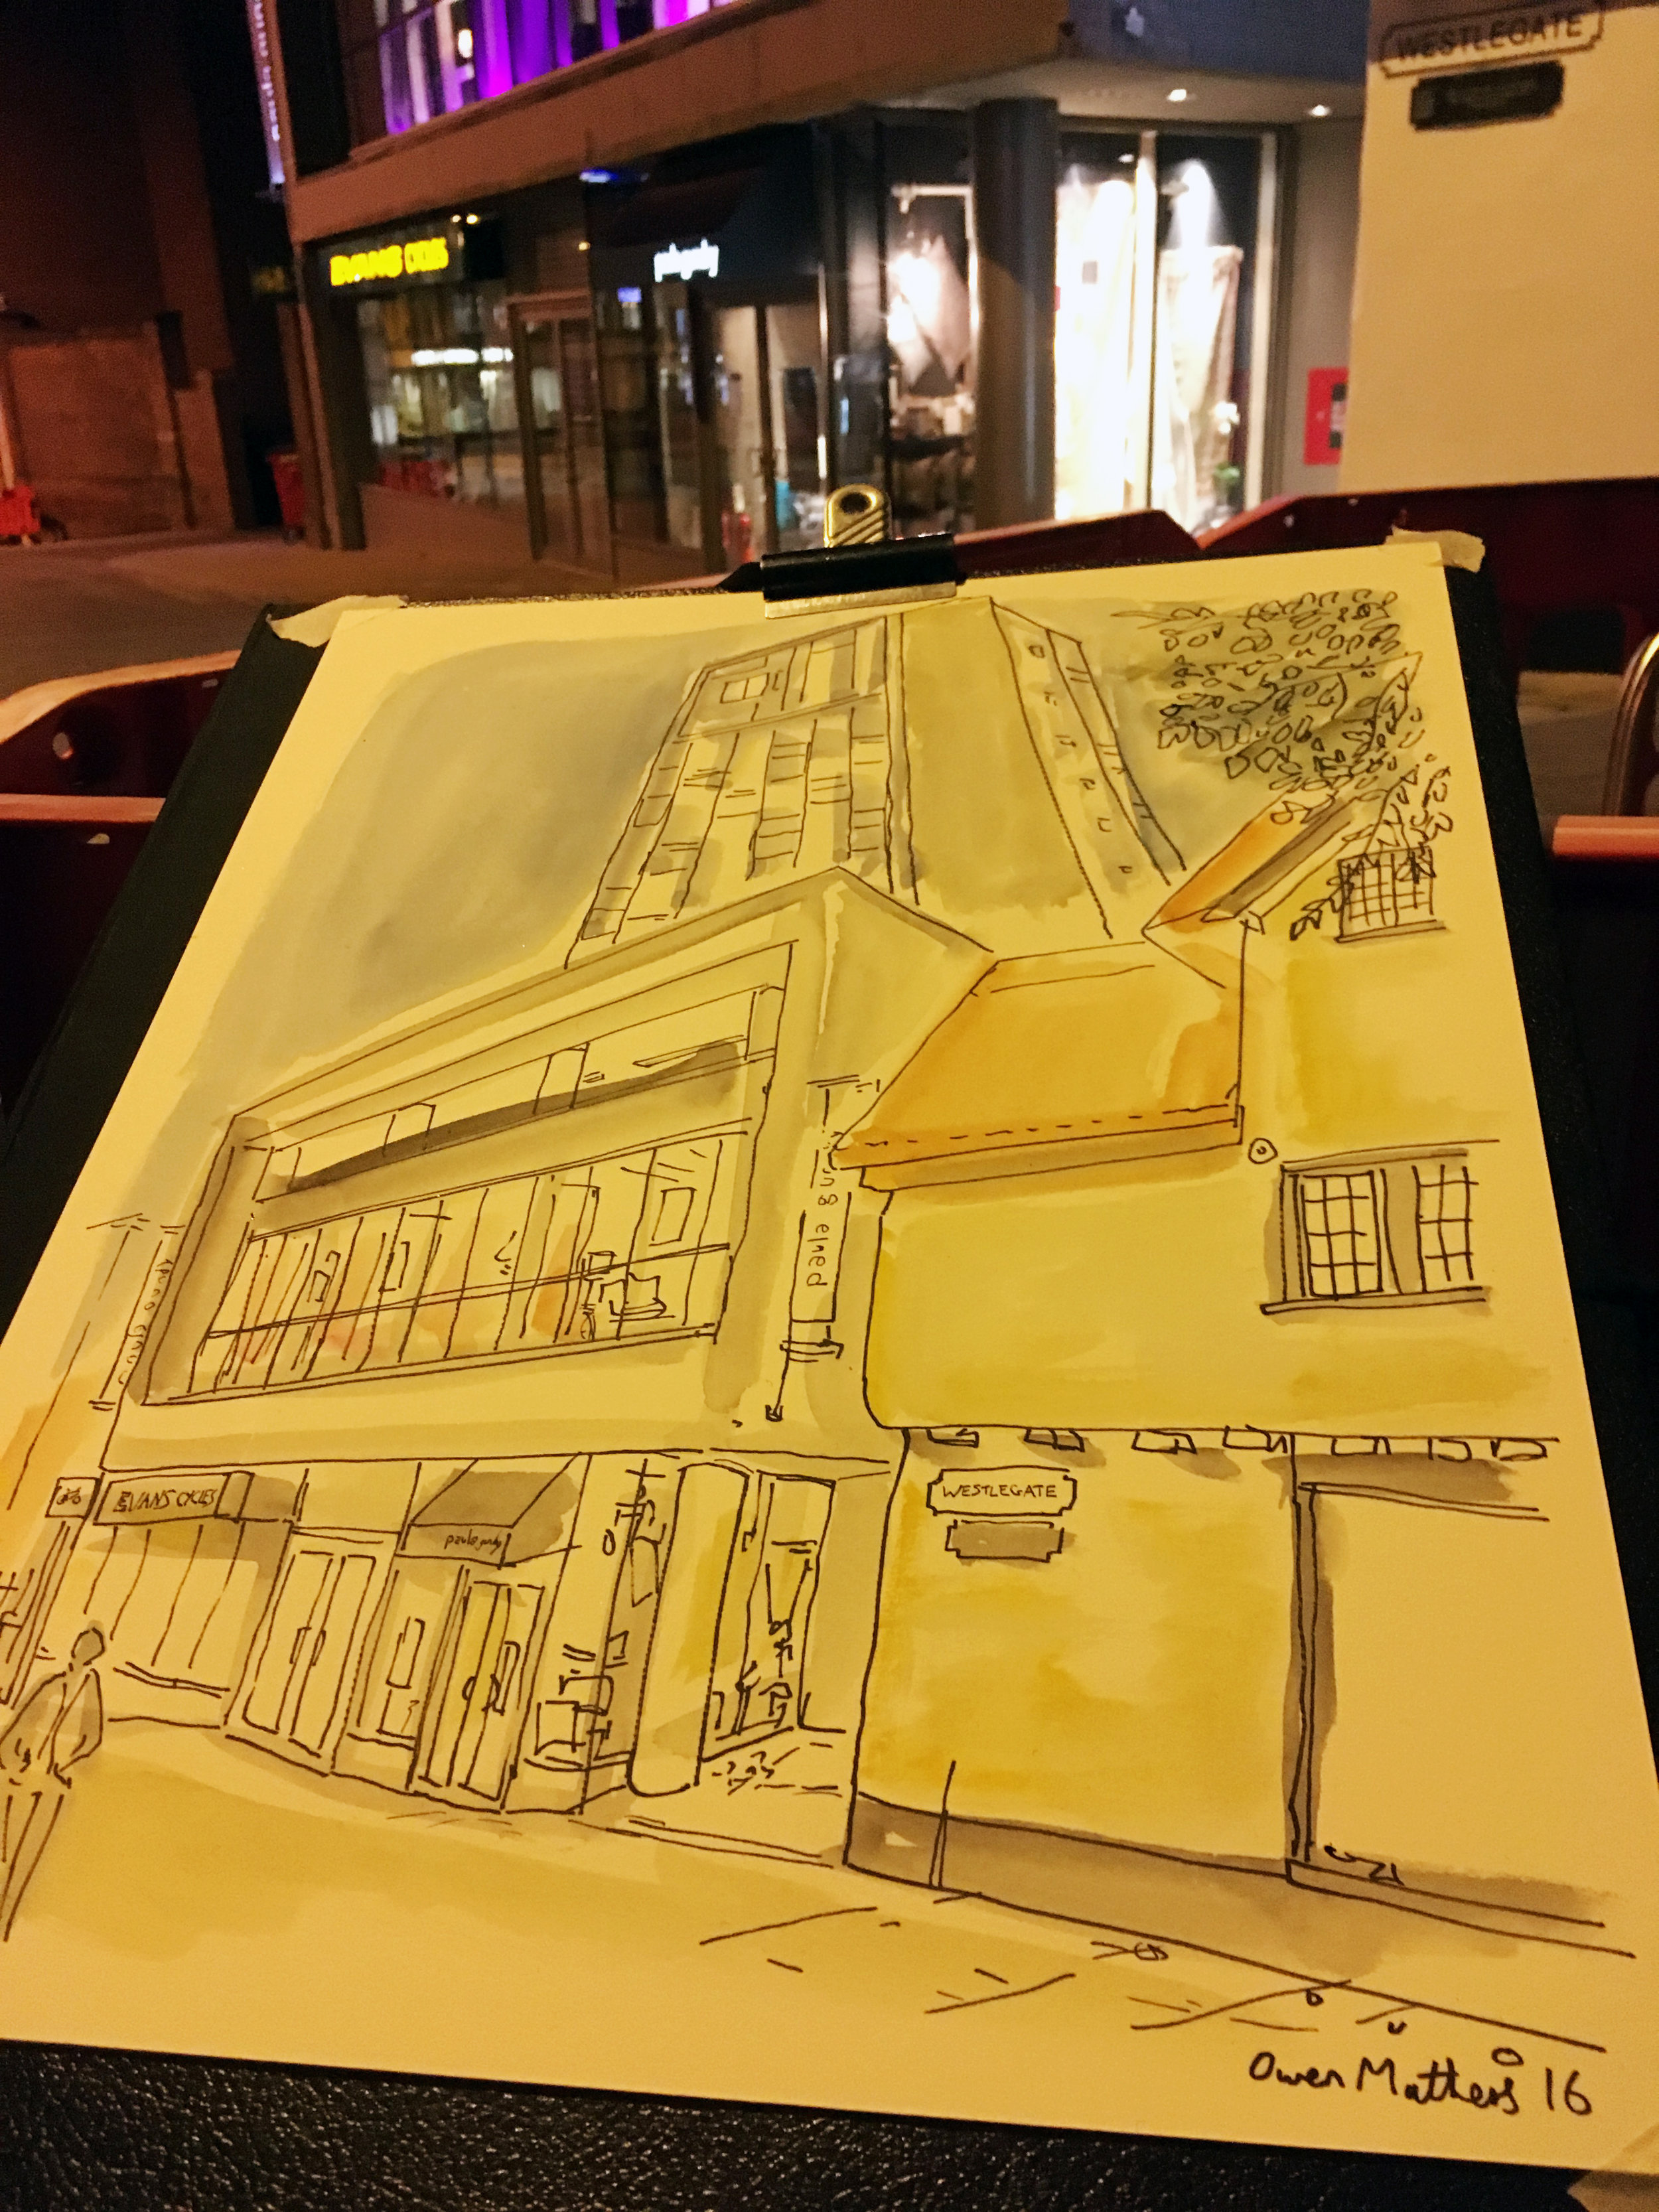 Westlegate, night time drawing. I wanted to show the contrast here of the thatched roof building (only one in city centre I believe, next to the luxury new block of flats)